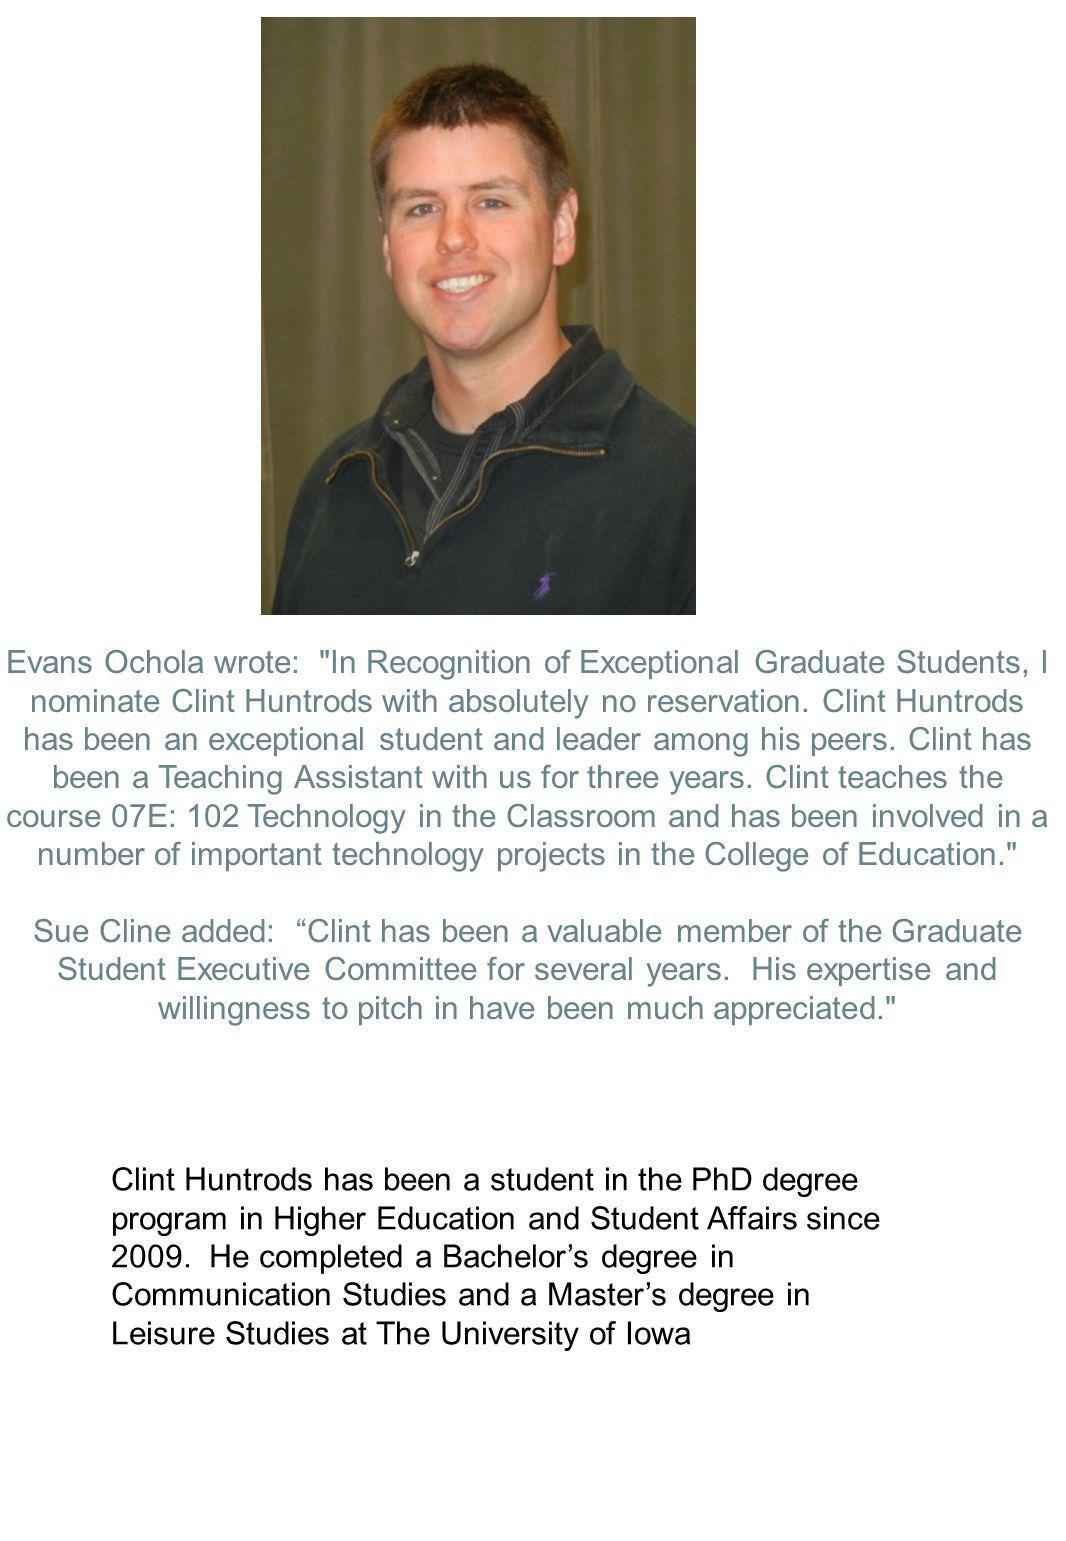 Evans Ochola wrote: In Recognition of Exceptional Graduate Students, I nominate Clint Huntrods with absolutely no reservation. Clint Huntrods has been an exceptional student and leader among his peers. Clint has been a Teaching Assistant with us for three years. Clint teaches the course 07E: 102 Technology in the Classroom and has been involved in a number of important technology projects in the College of Education.